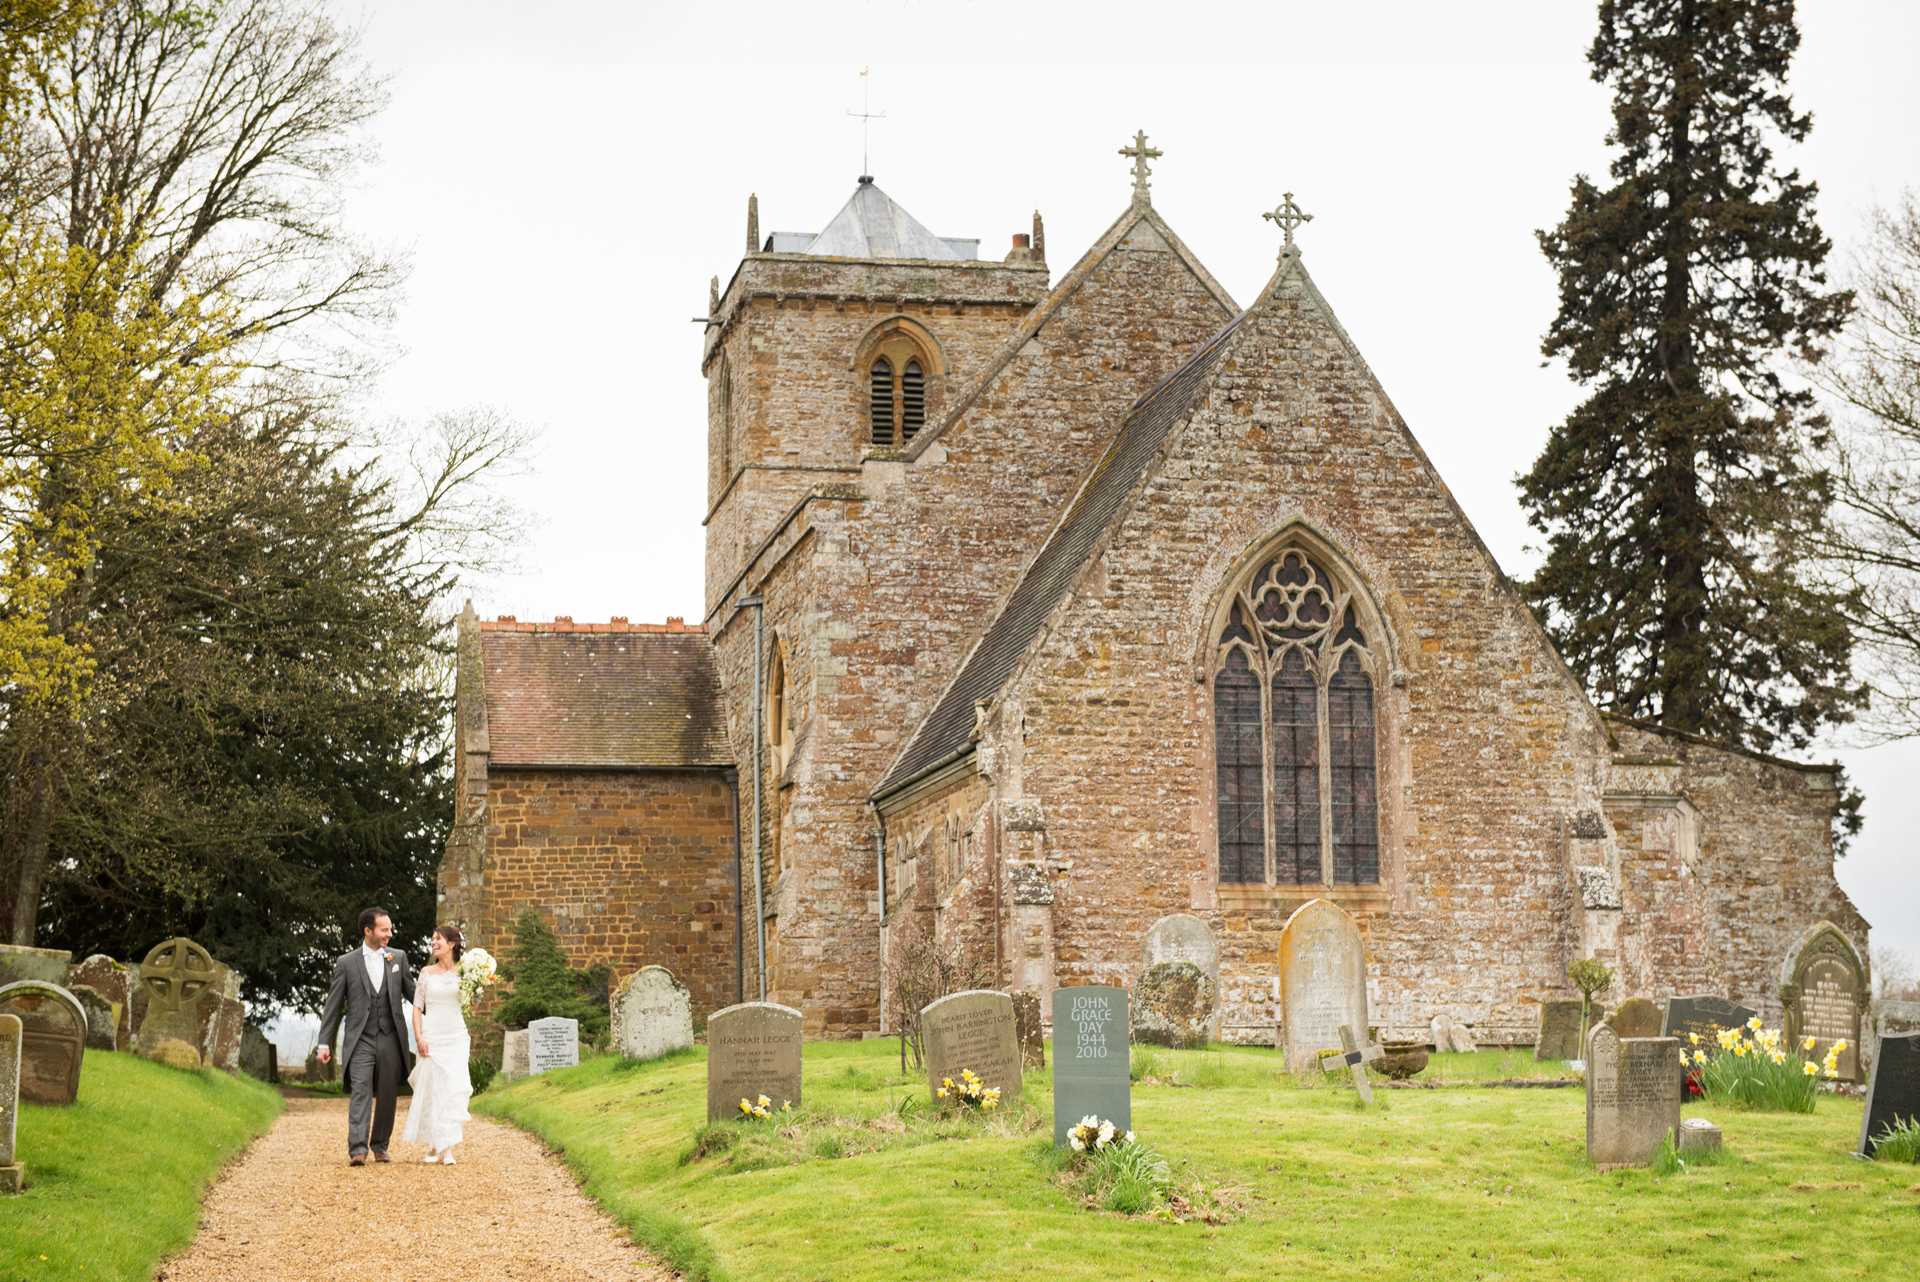 Bride & Groom walking down the path at Dodford church